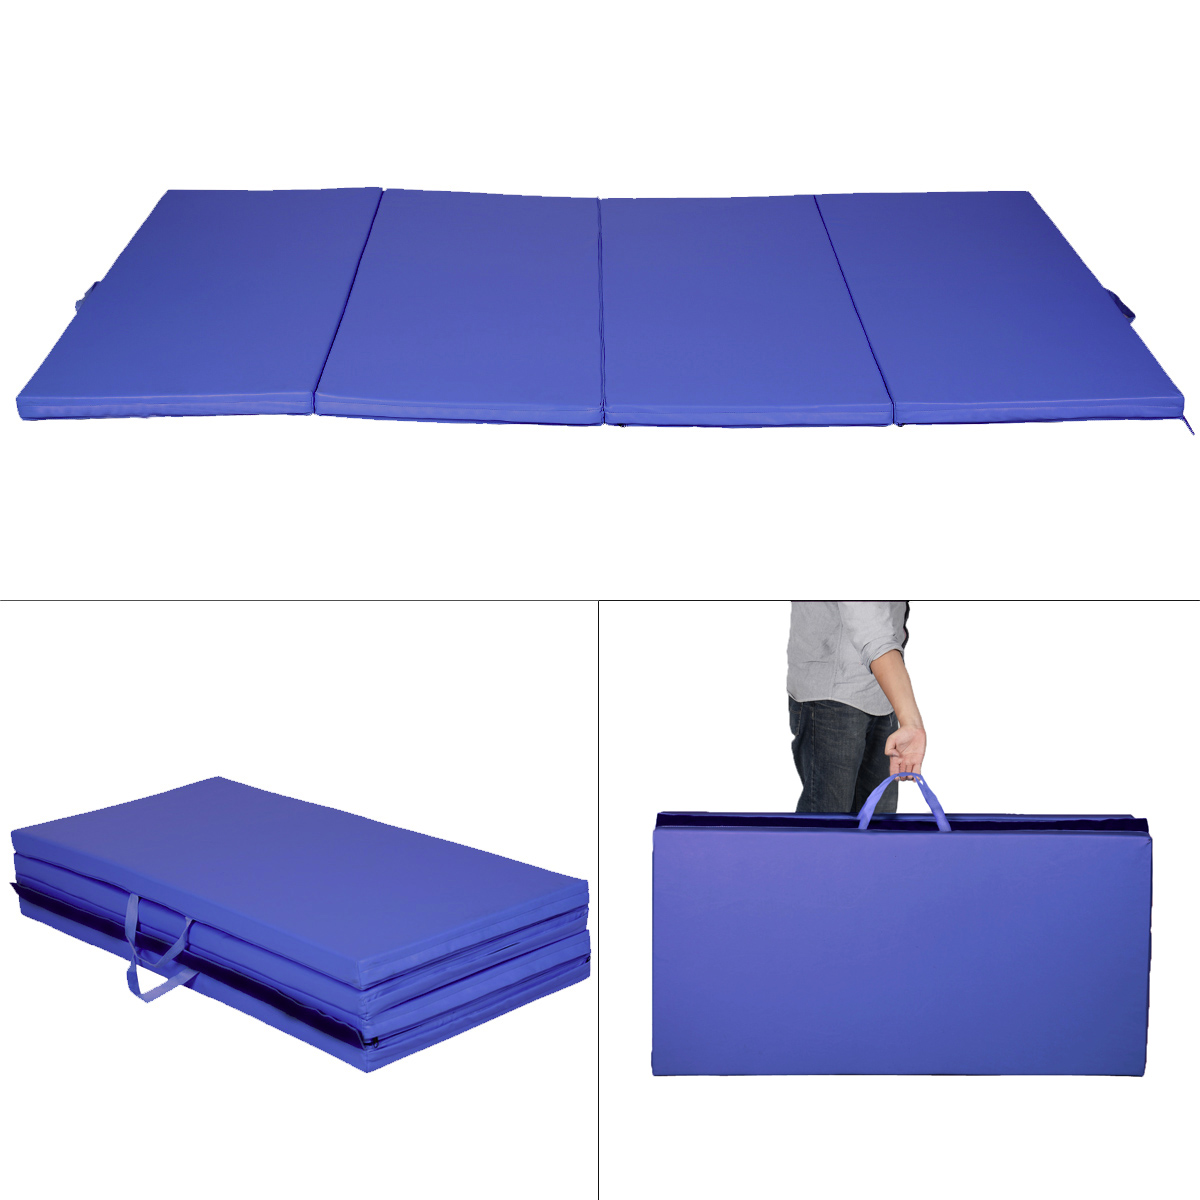 for mat walmart gymnastics ip thick costway panel com home fitness pink purple gym exercise folding gymnastic mats